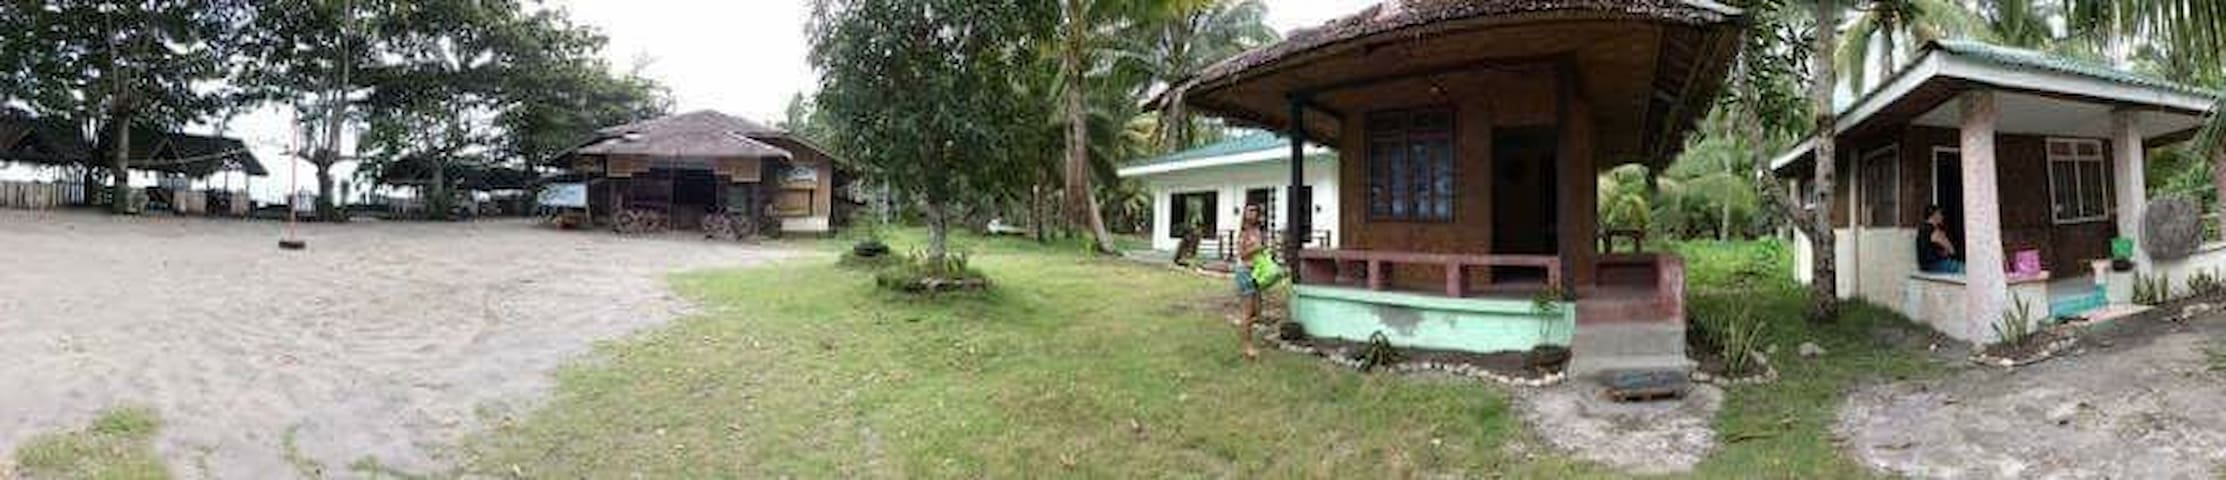 Morzant beach resort Beach house. - Lianga - Rumah